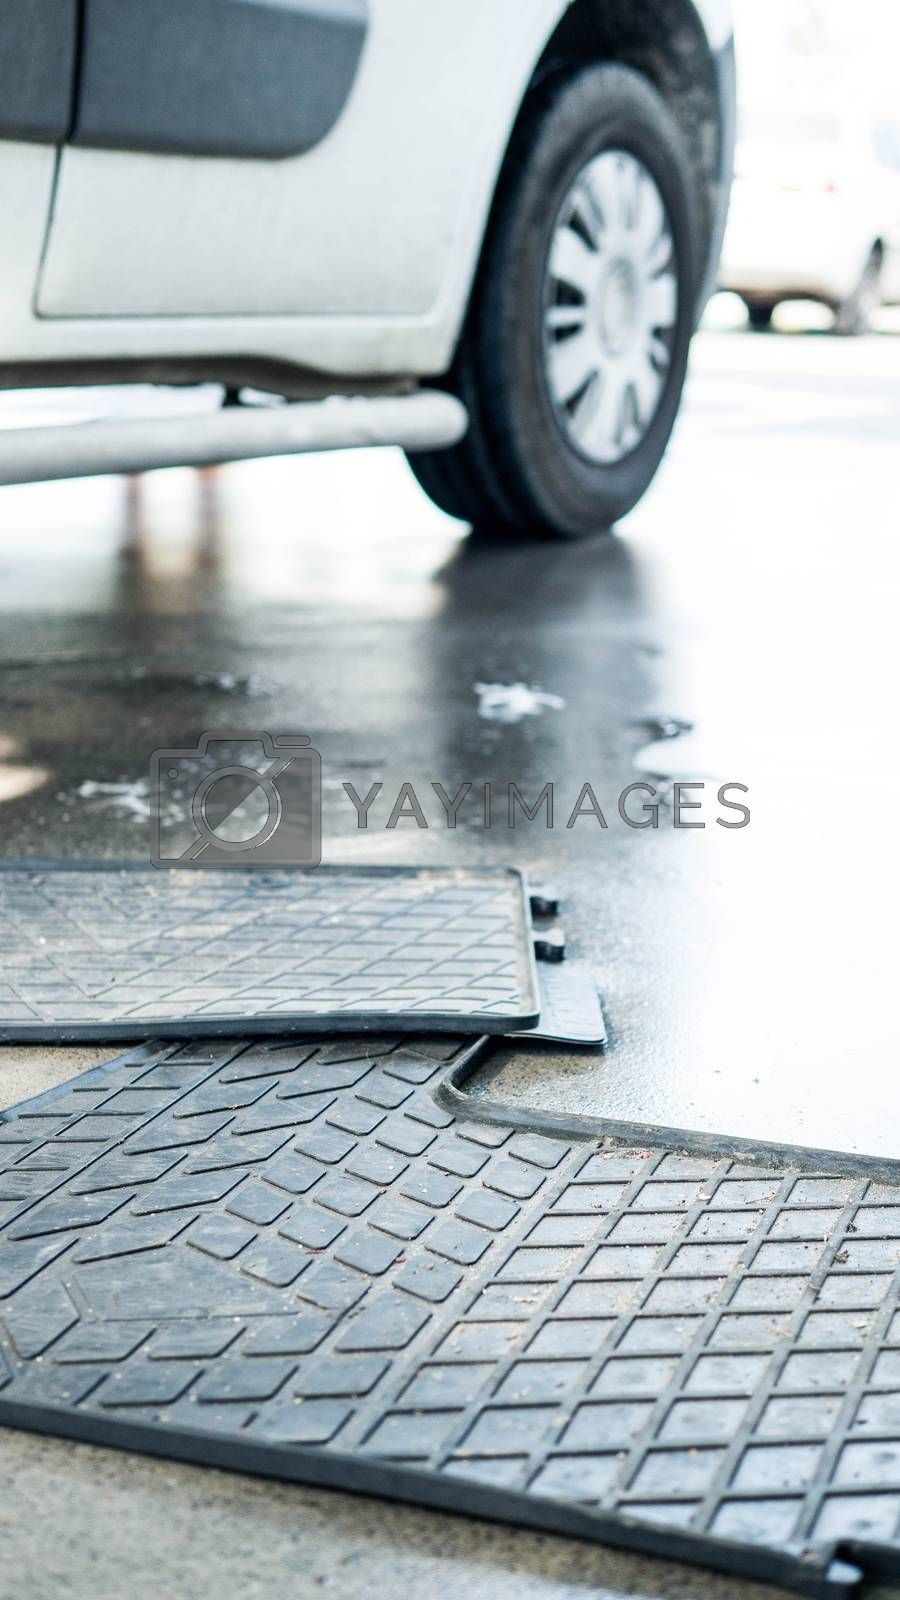 Royalty free image of Washing of car mats,preparation for cleaning rubber car mats. by Andriii_Klapkoo